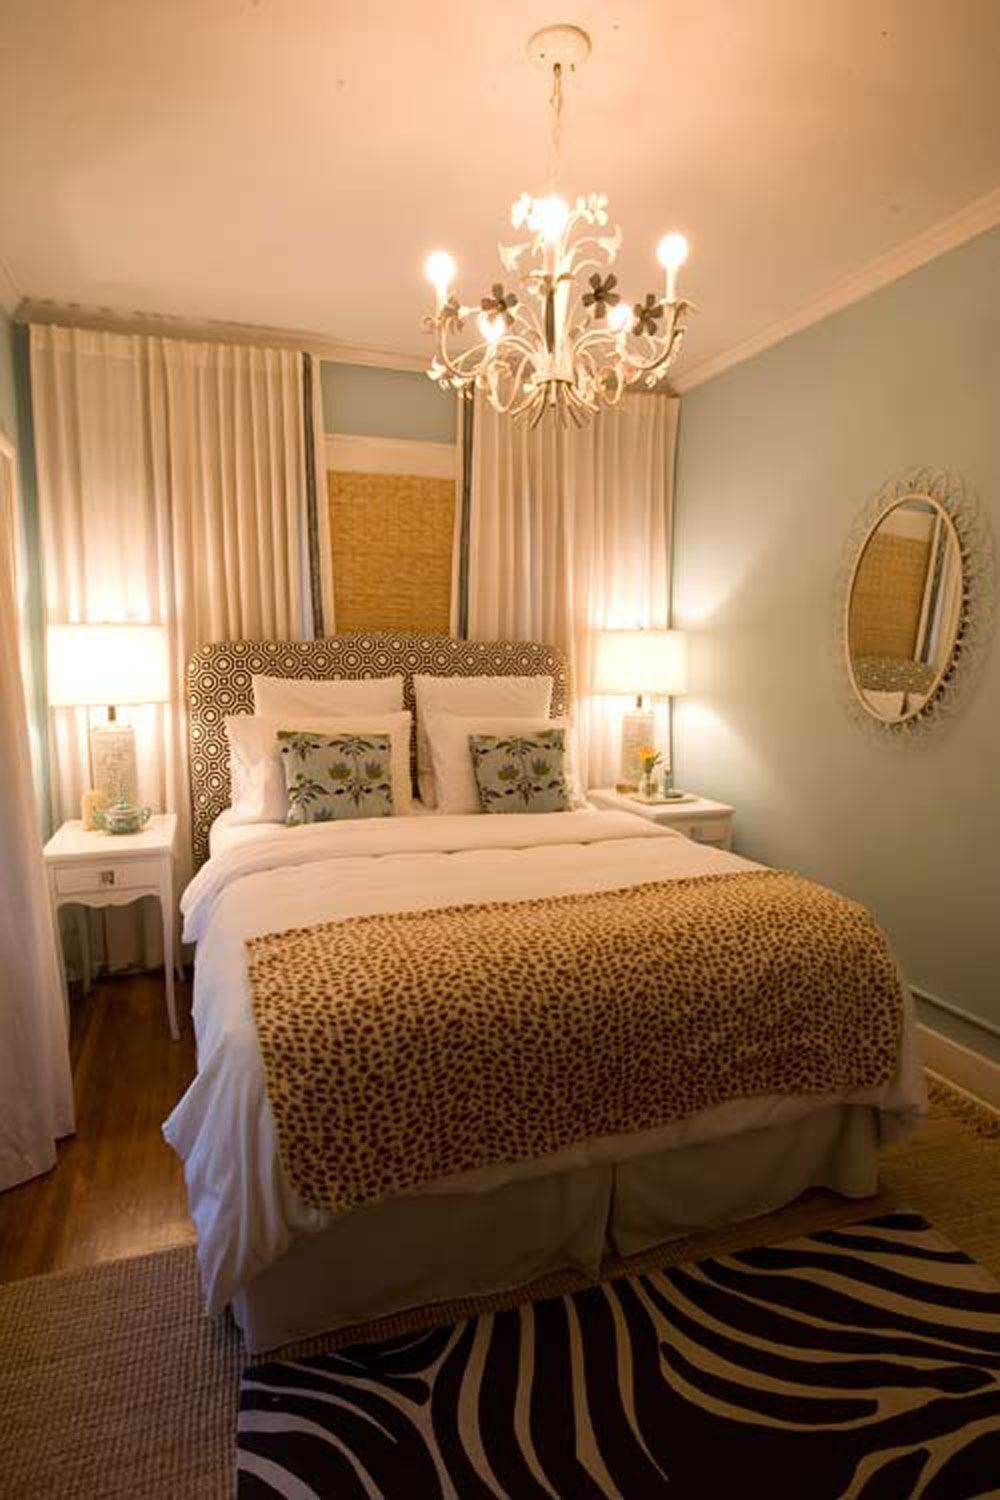 Design Tips For Decorating A Small Bedroom On A Budget ...